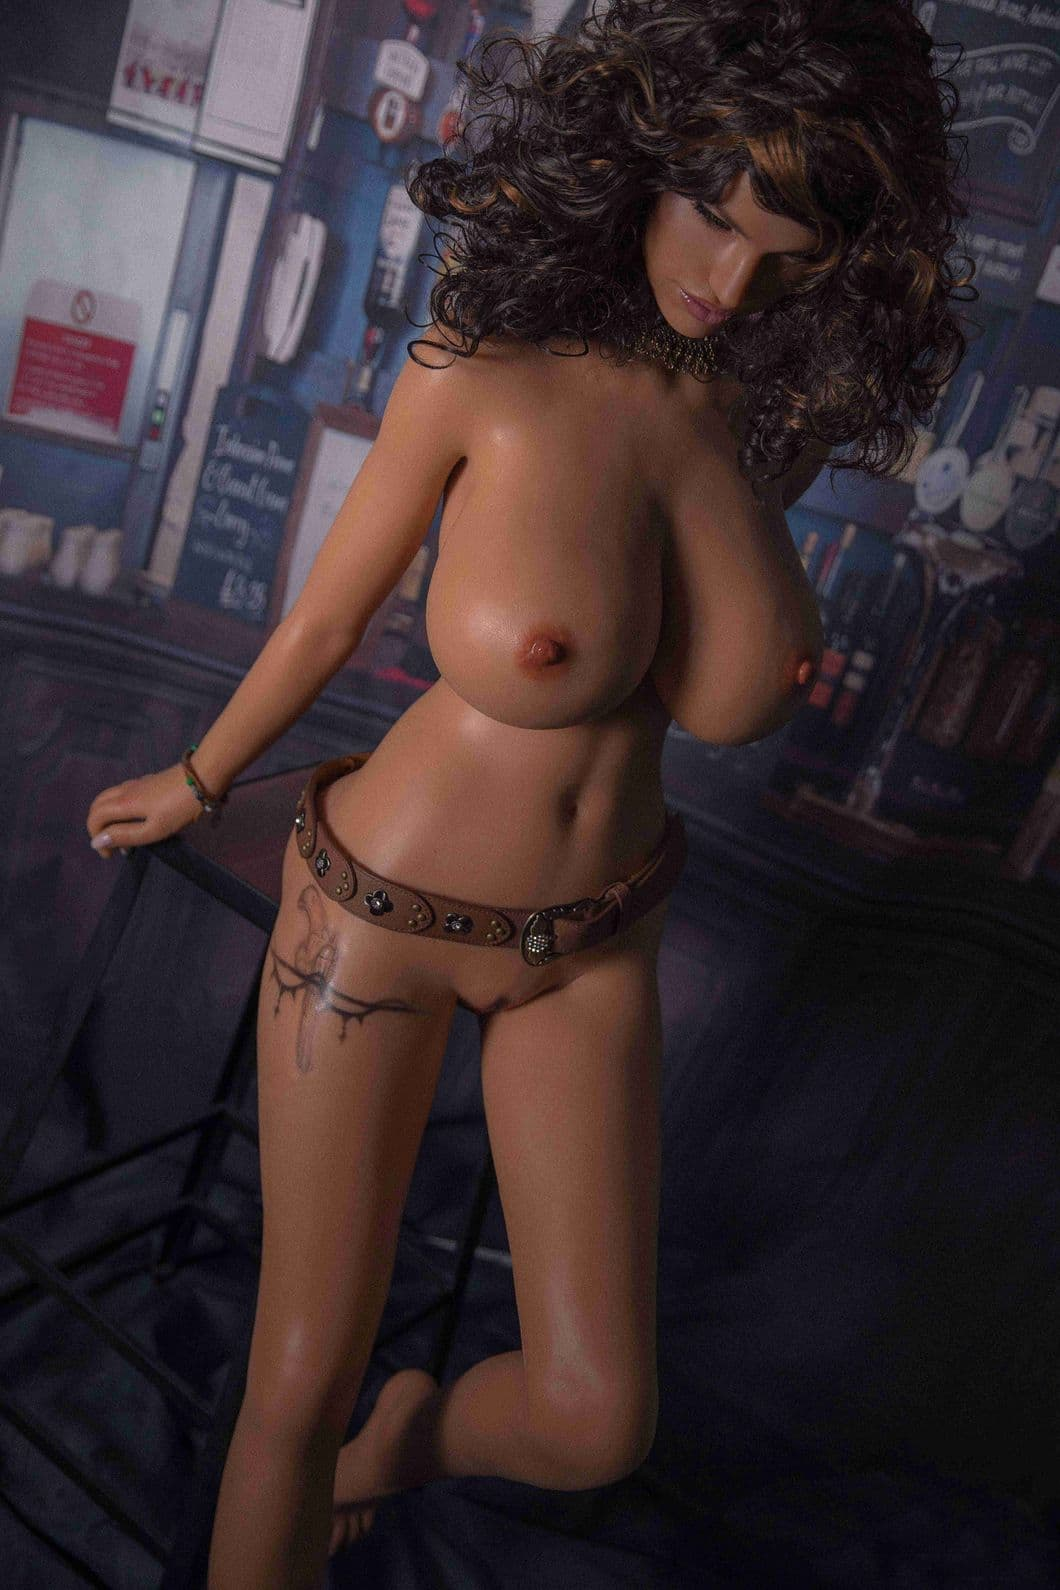 glenne 159cm 5ft3 brown hair big boobs athletic silicone tan skin sex doll(8)